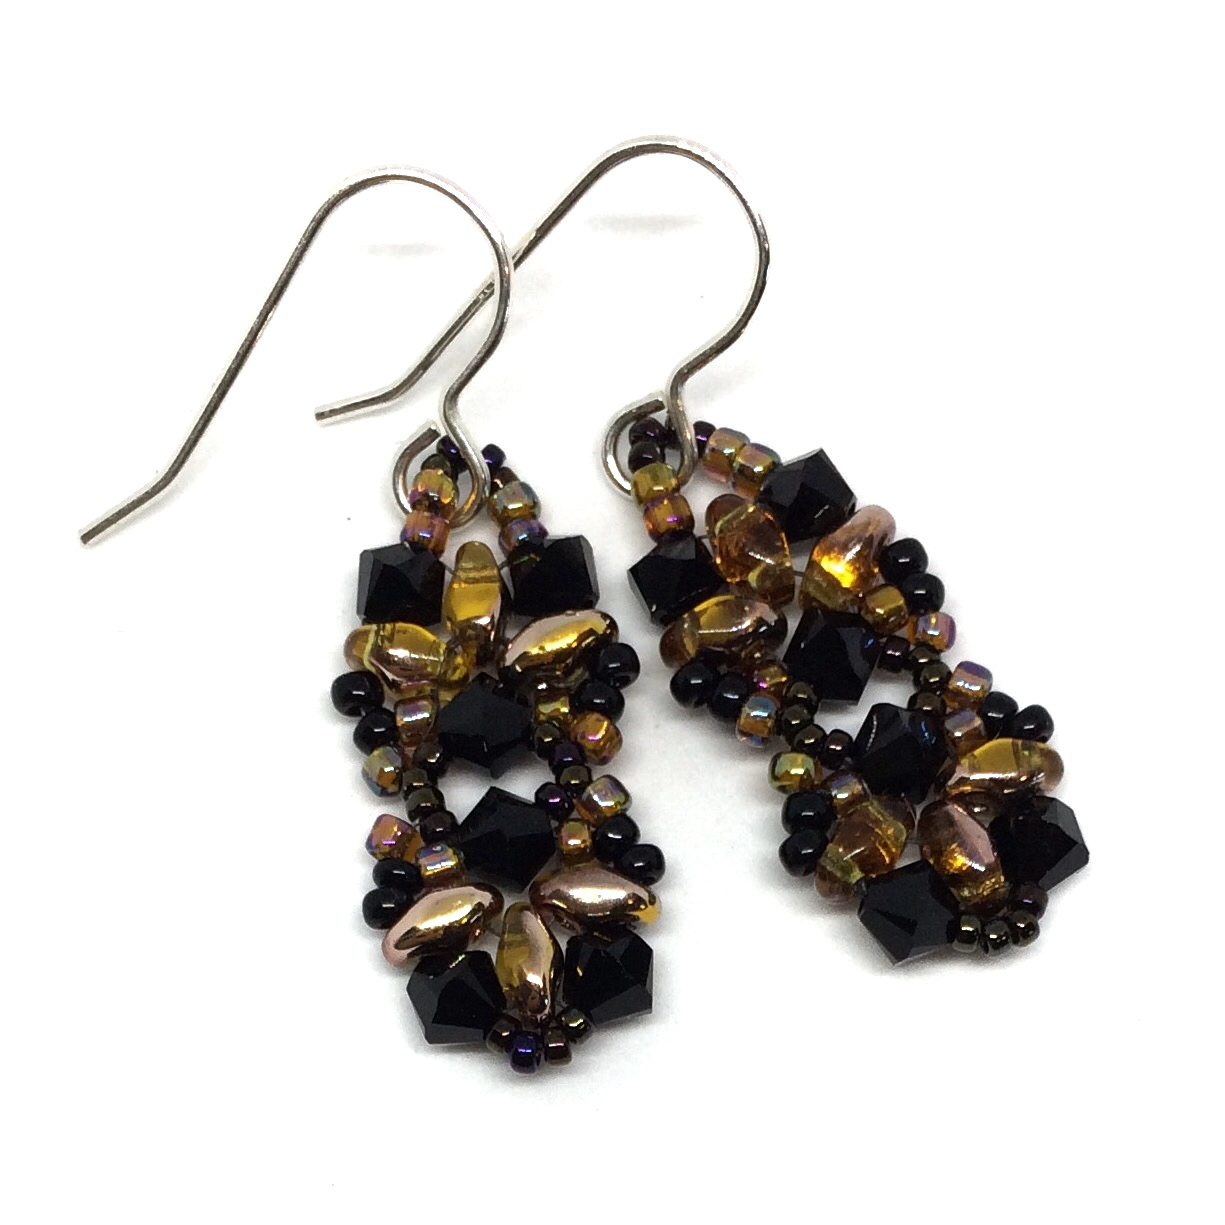 Topaz Color And Black Crystal Earrings On Sterling Silver Ear Hooks